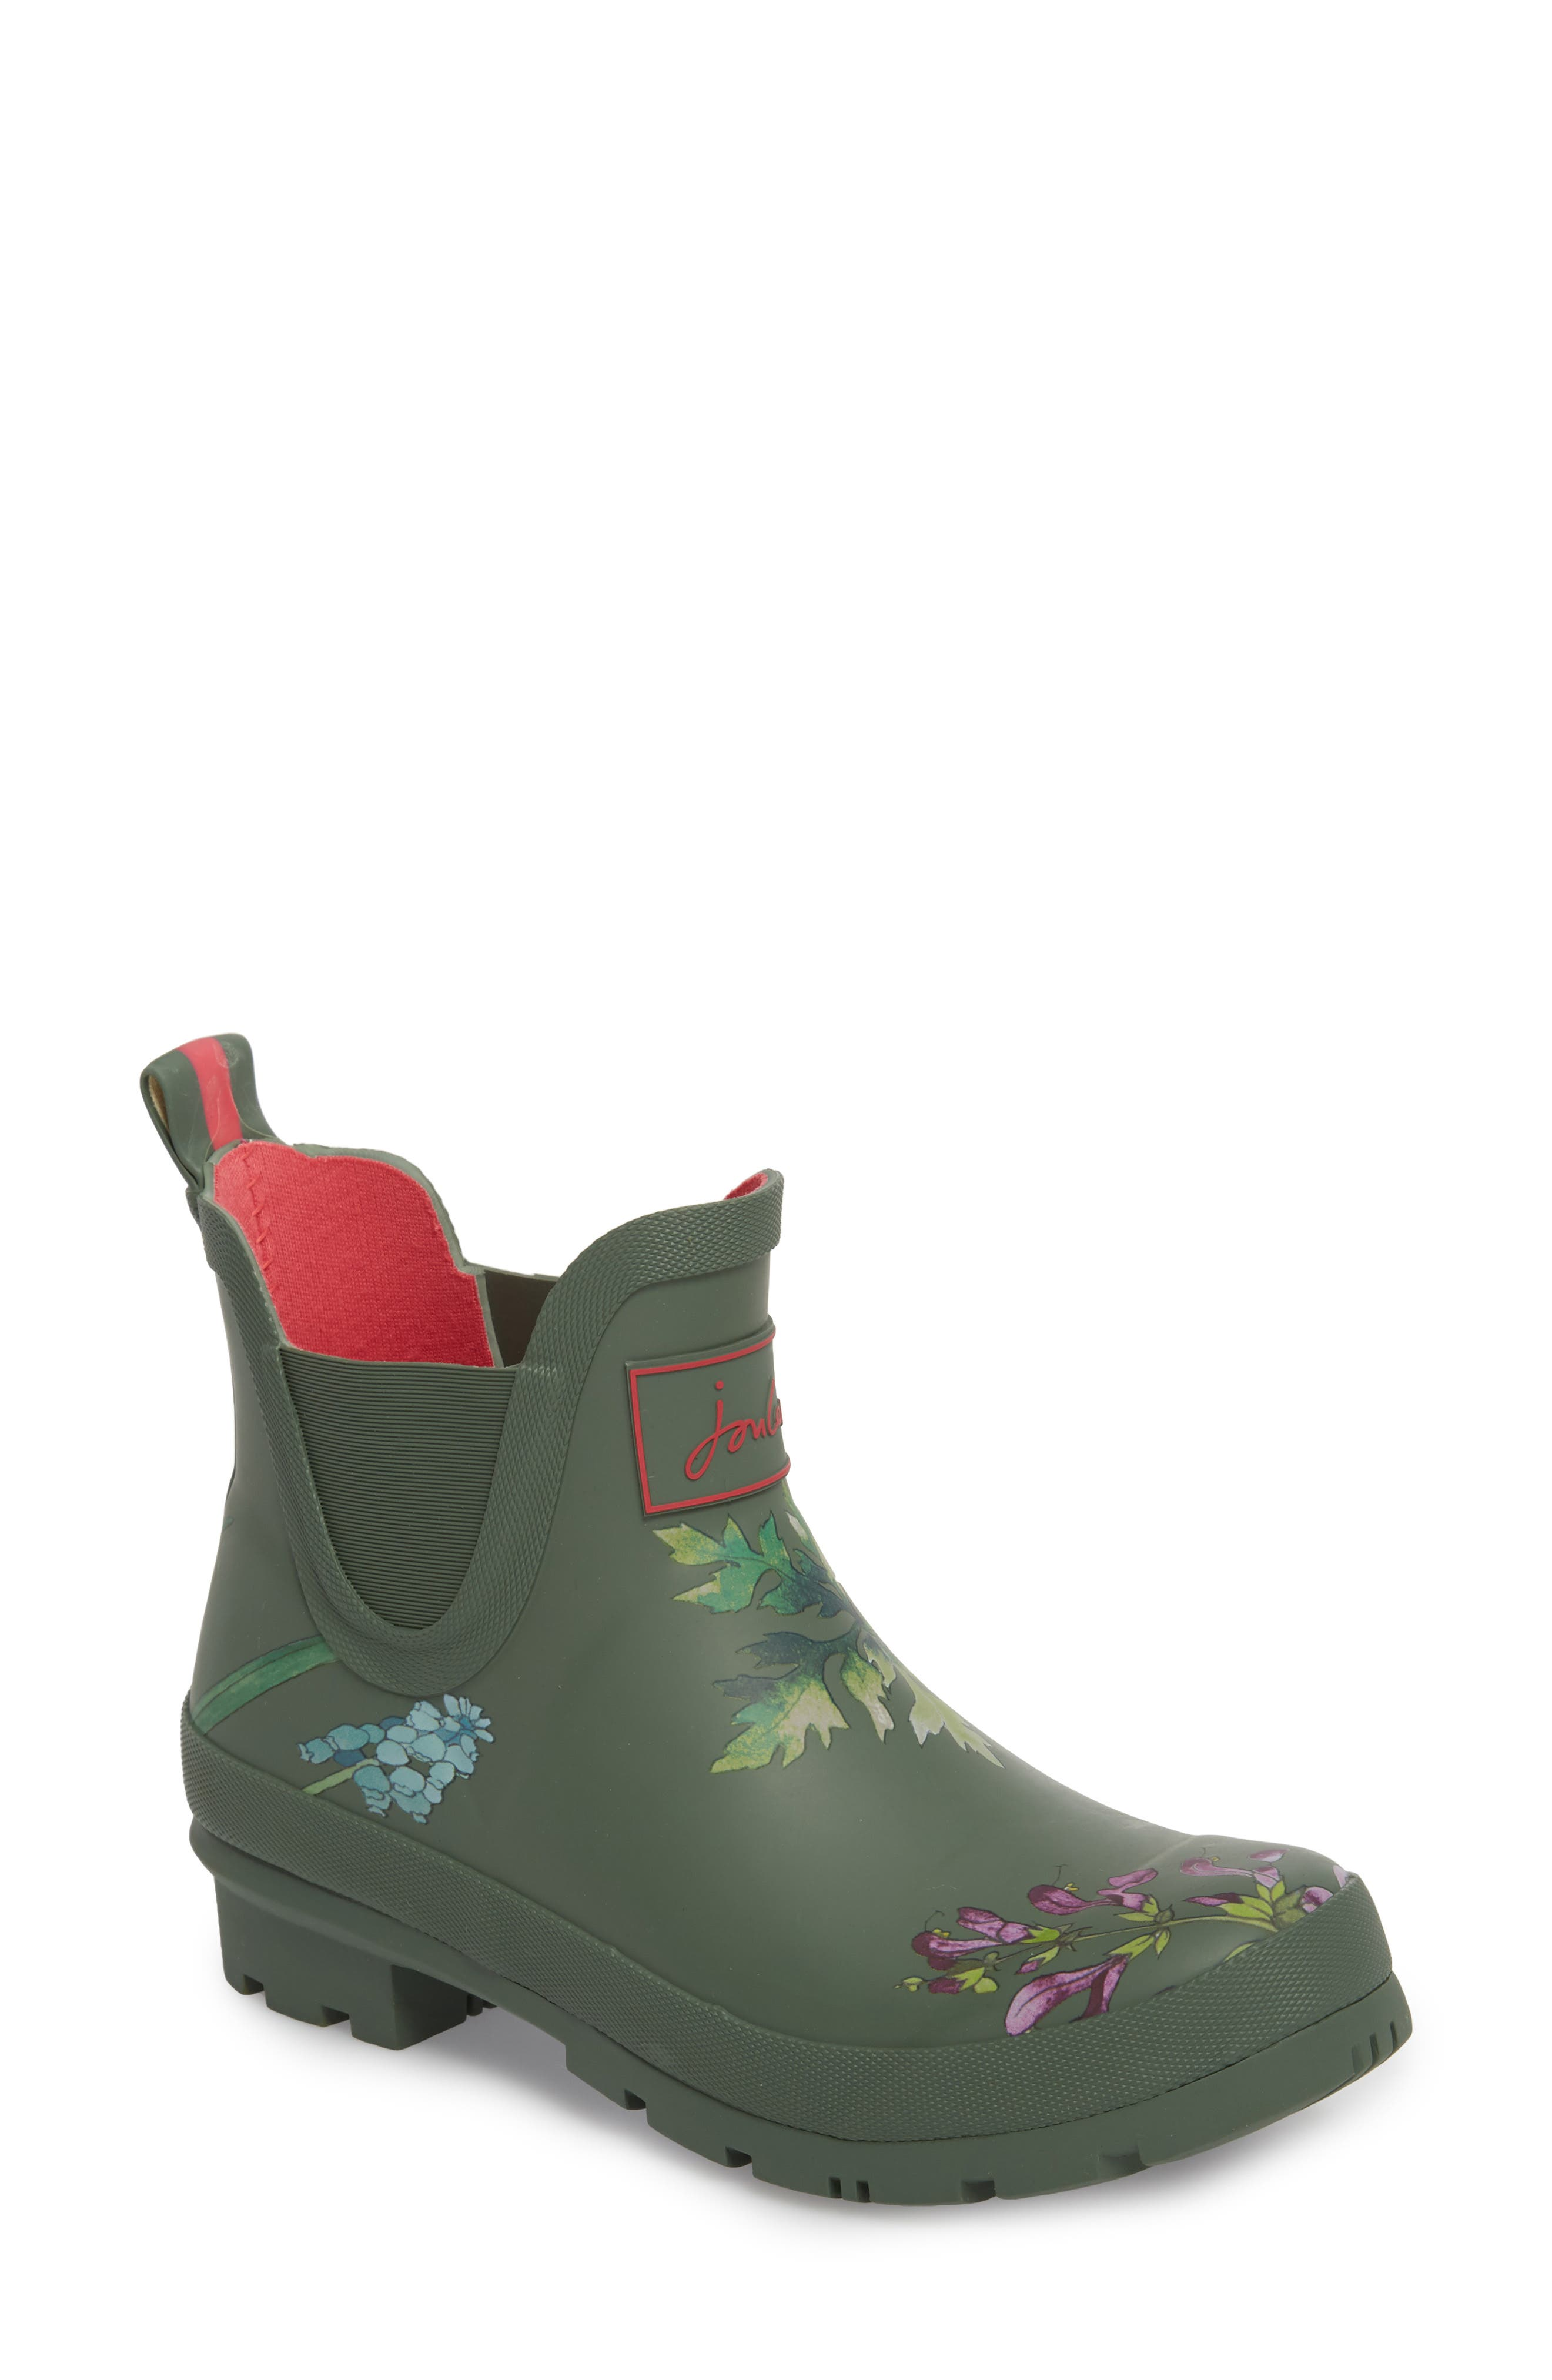 'Wellibob' Short Rain Boot,                             Main thumbnail 1, color,                             Laurel Botanical